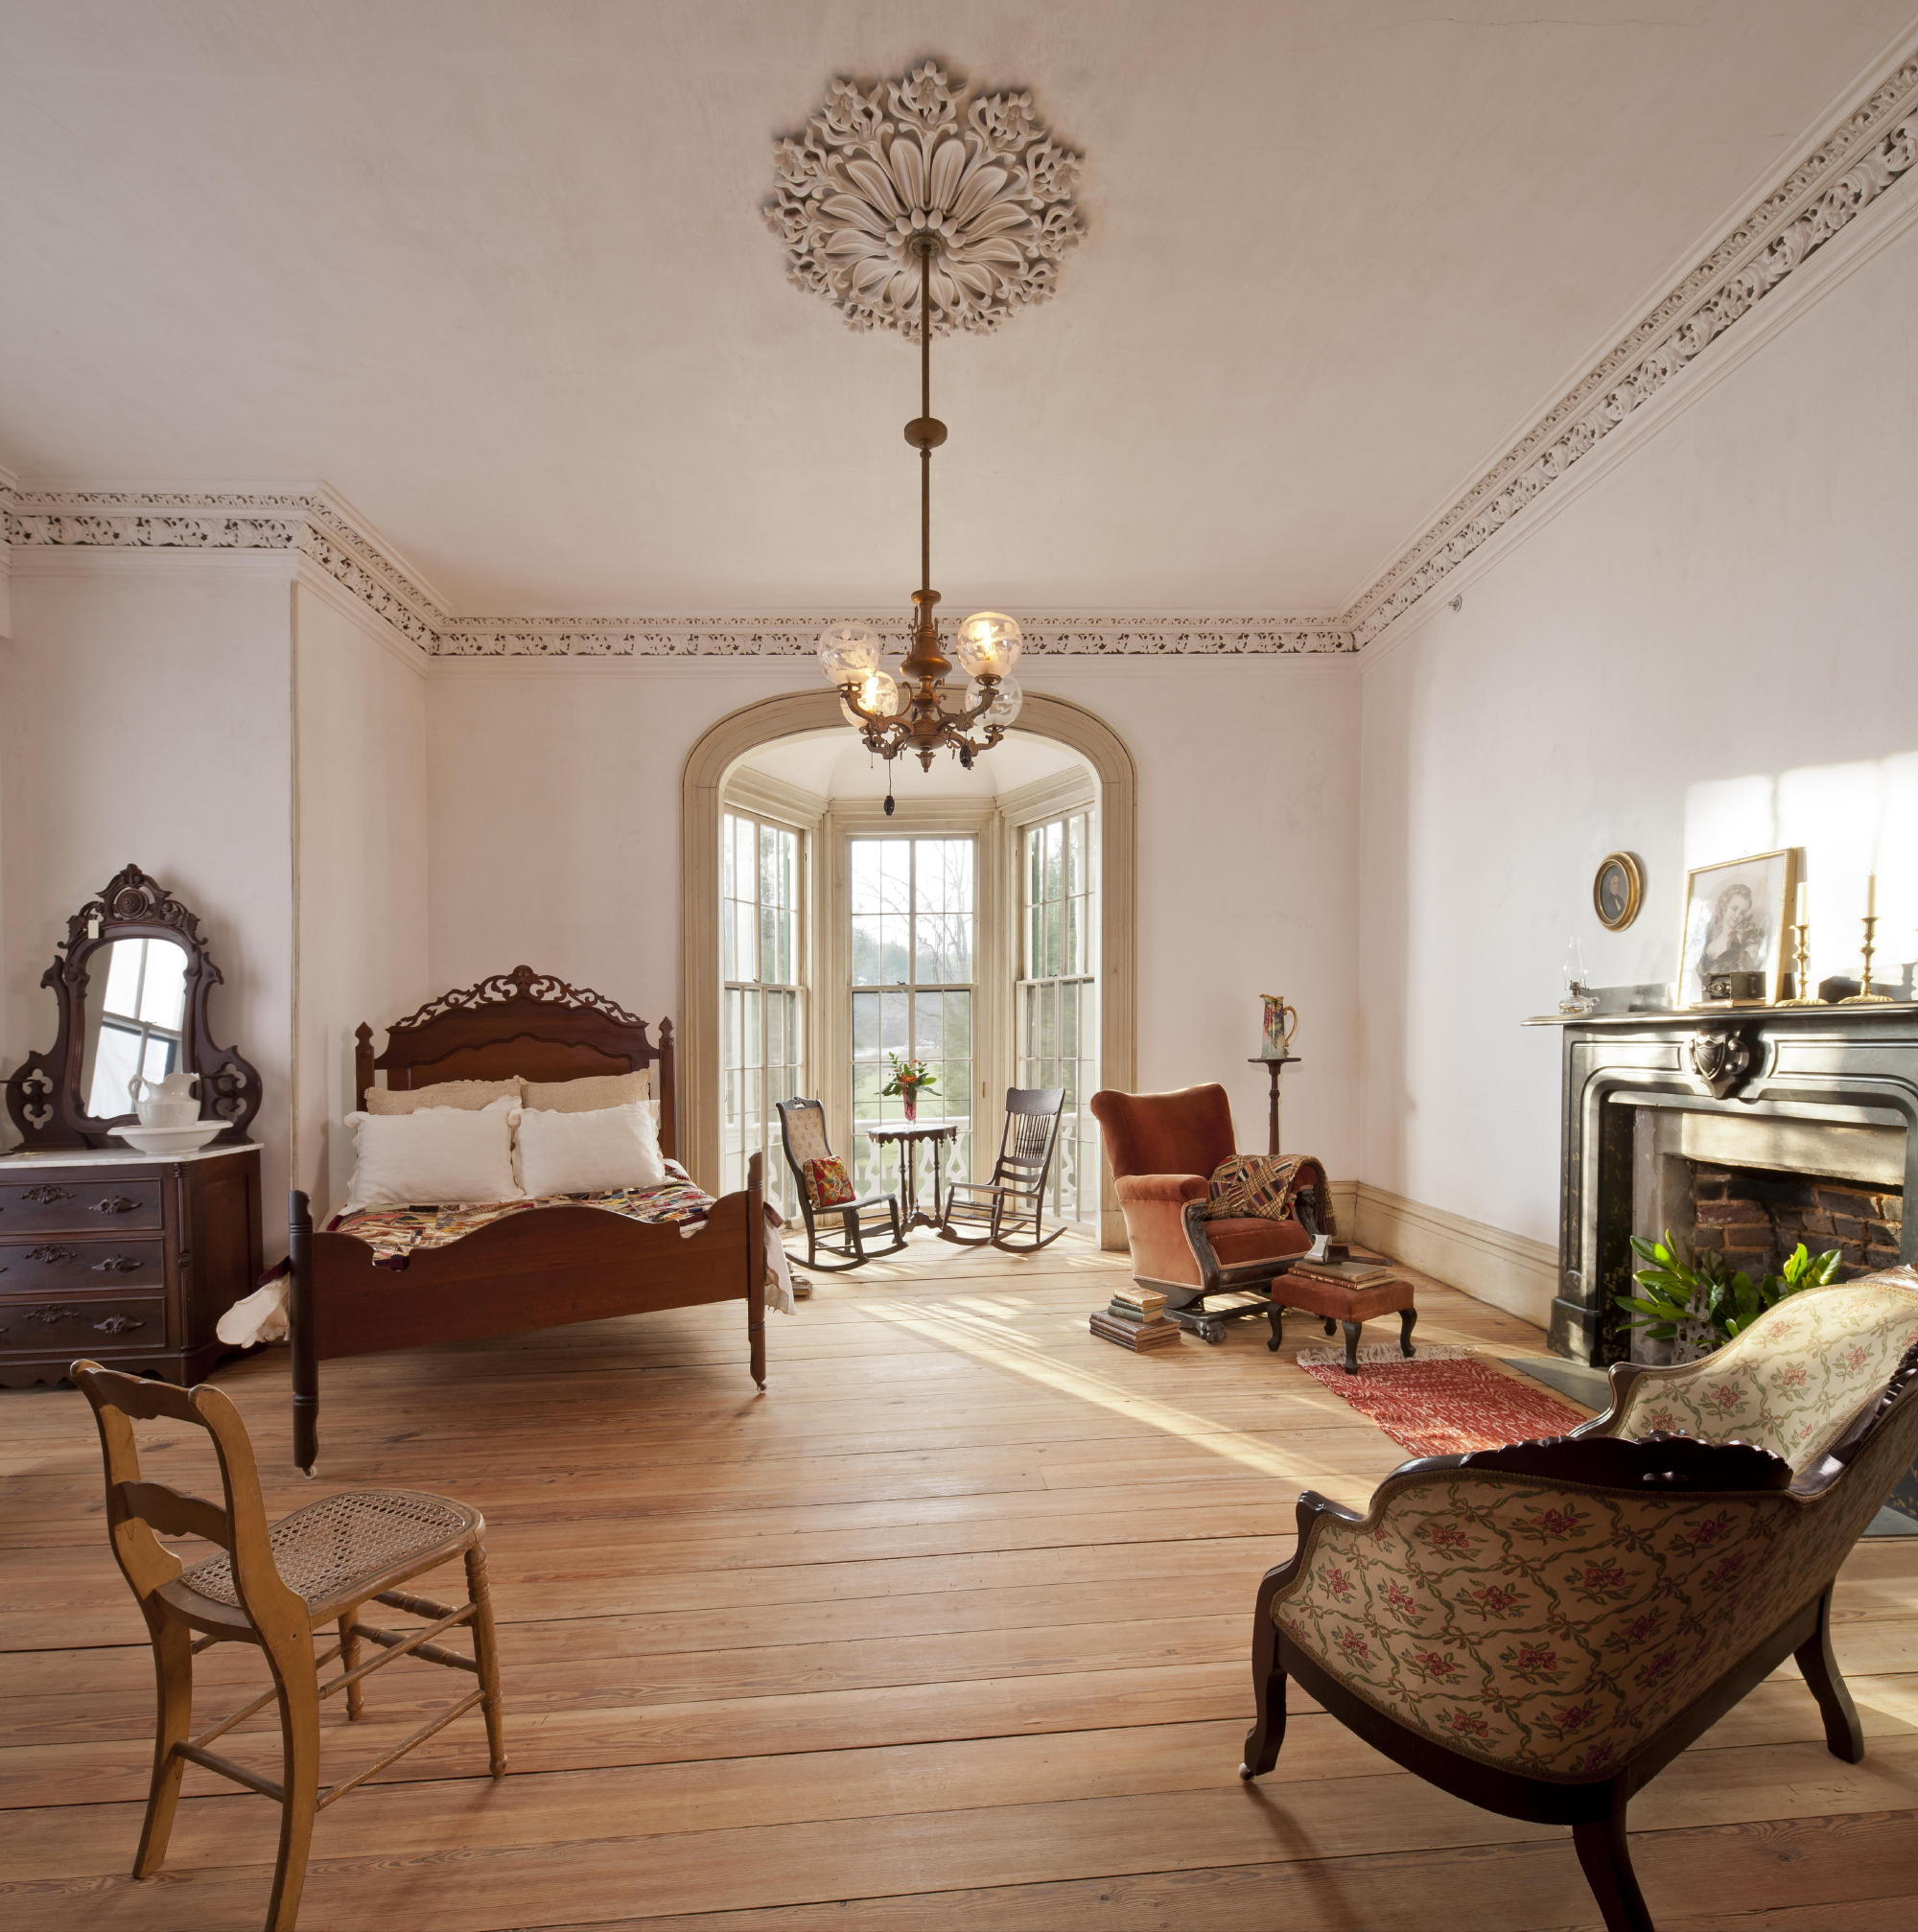 One of the second floor bedrooms in the farmhouse at Hardman Farm. Photo: c Jonathan Hillyer / Atlanta